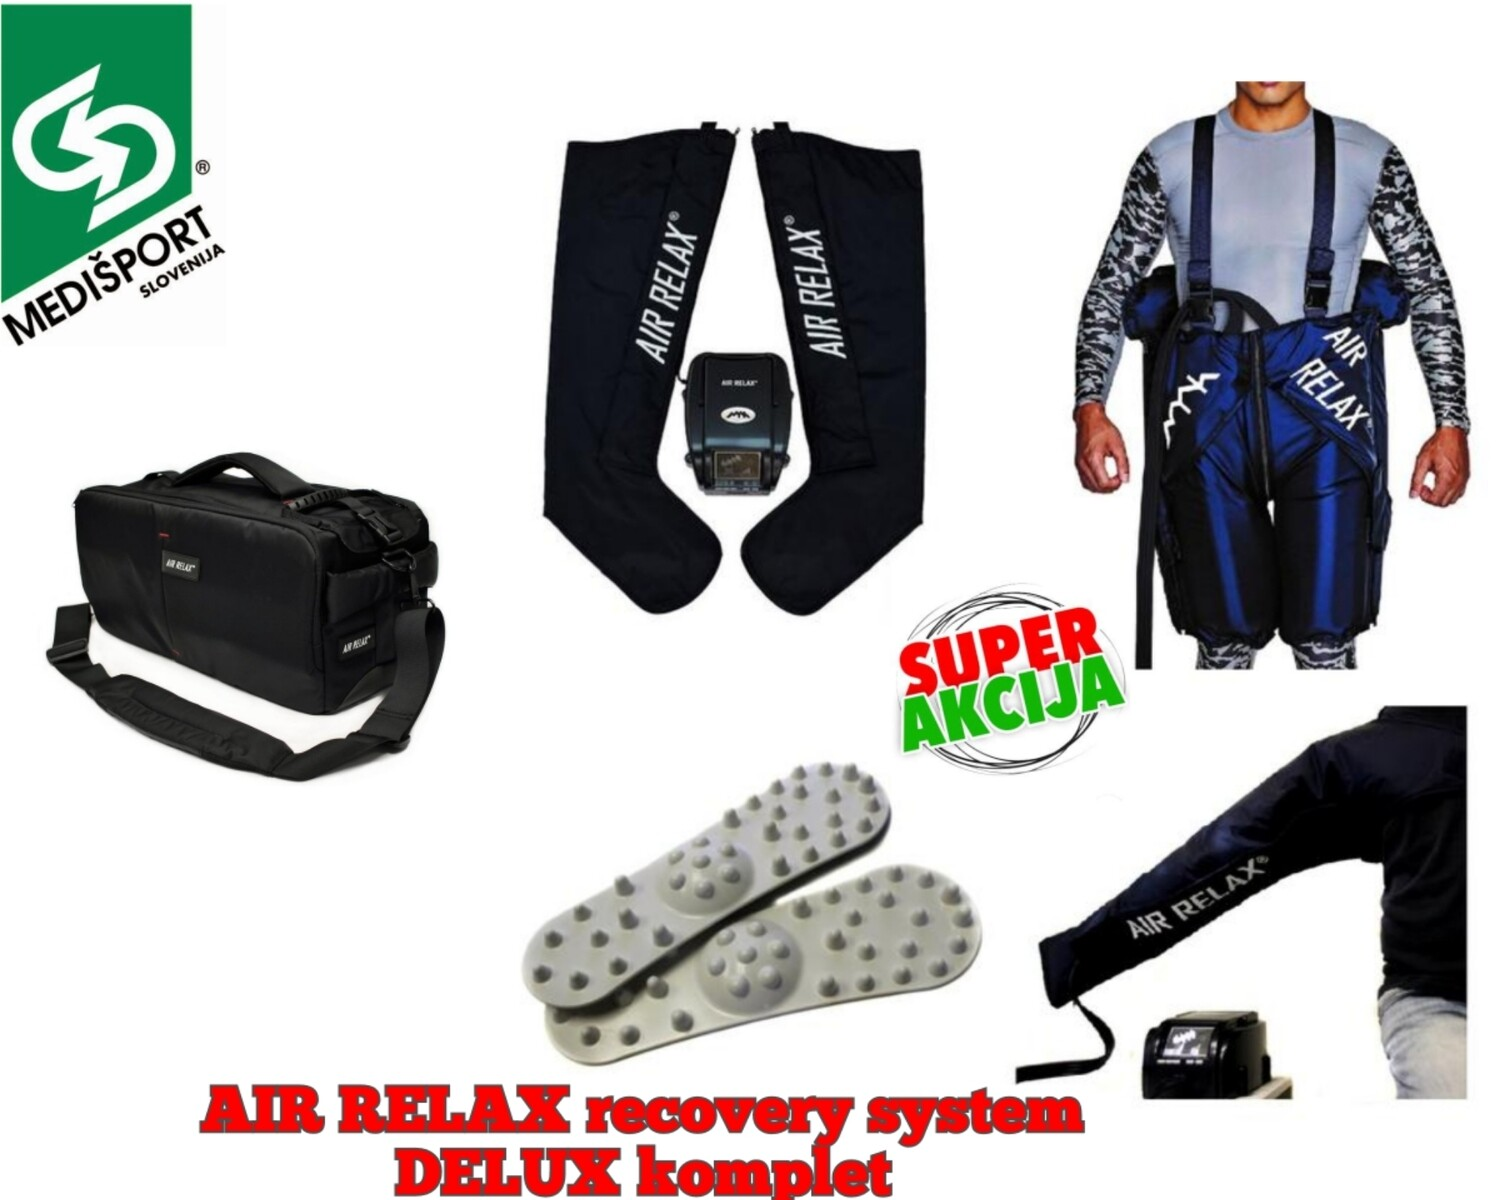 AIR RELAX recovery system - DELUX komplet